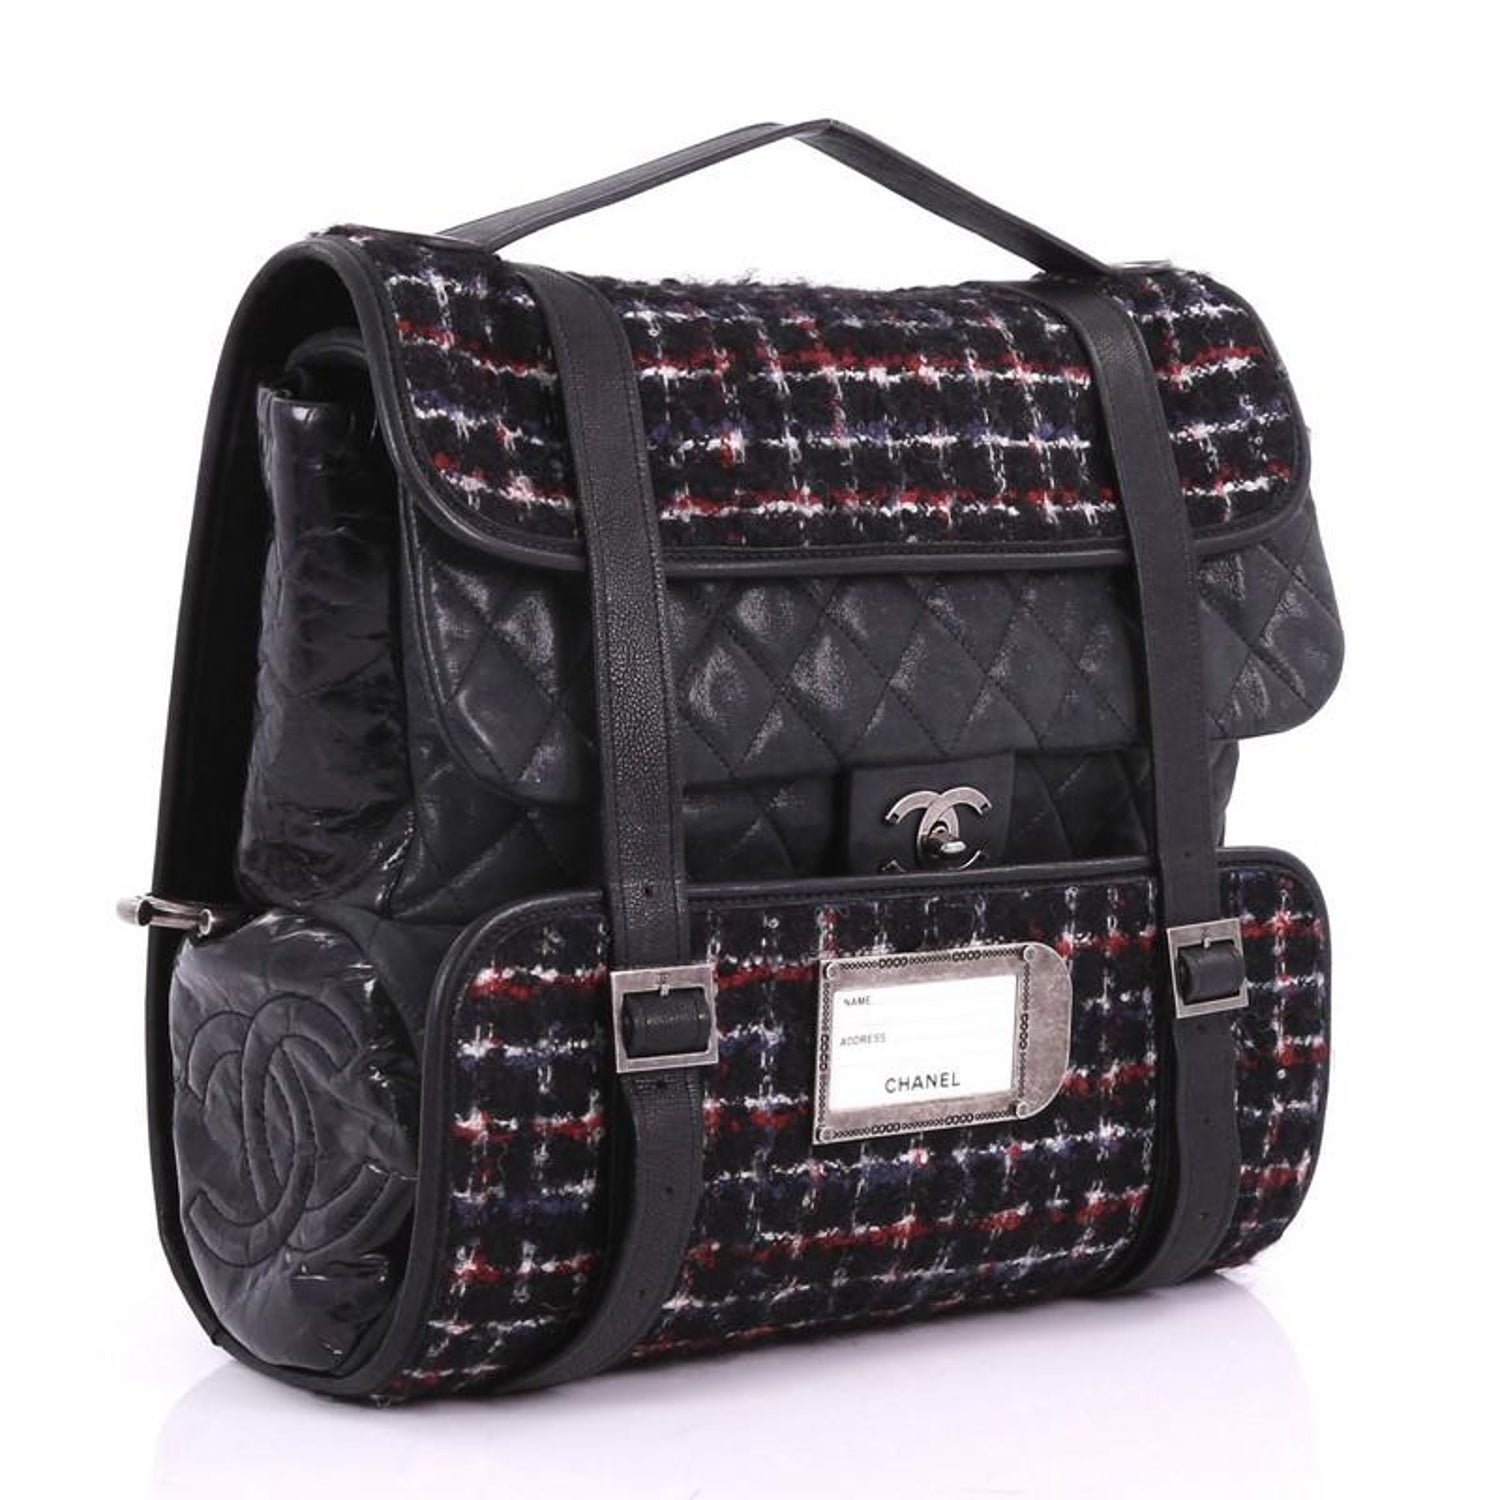 3e1710080a92 Chanel Roll Backpack Tweed with Quilted Calfskin Medium For Sale at 1stdibs